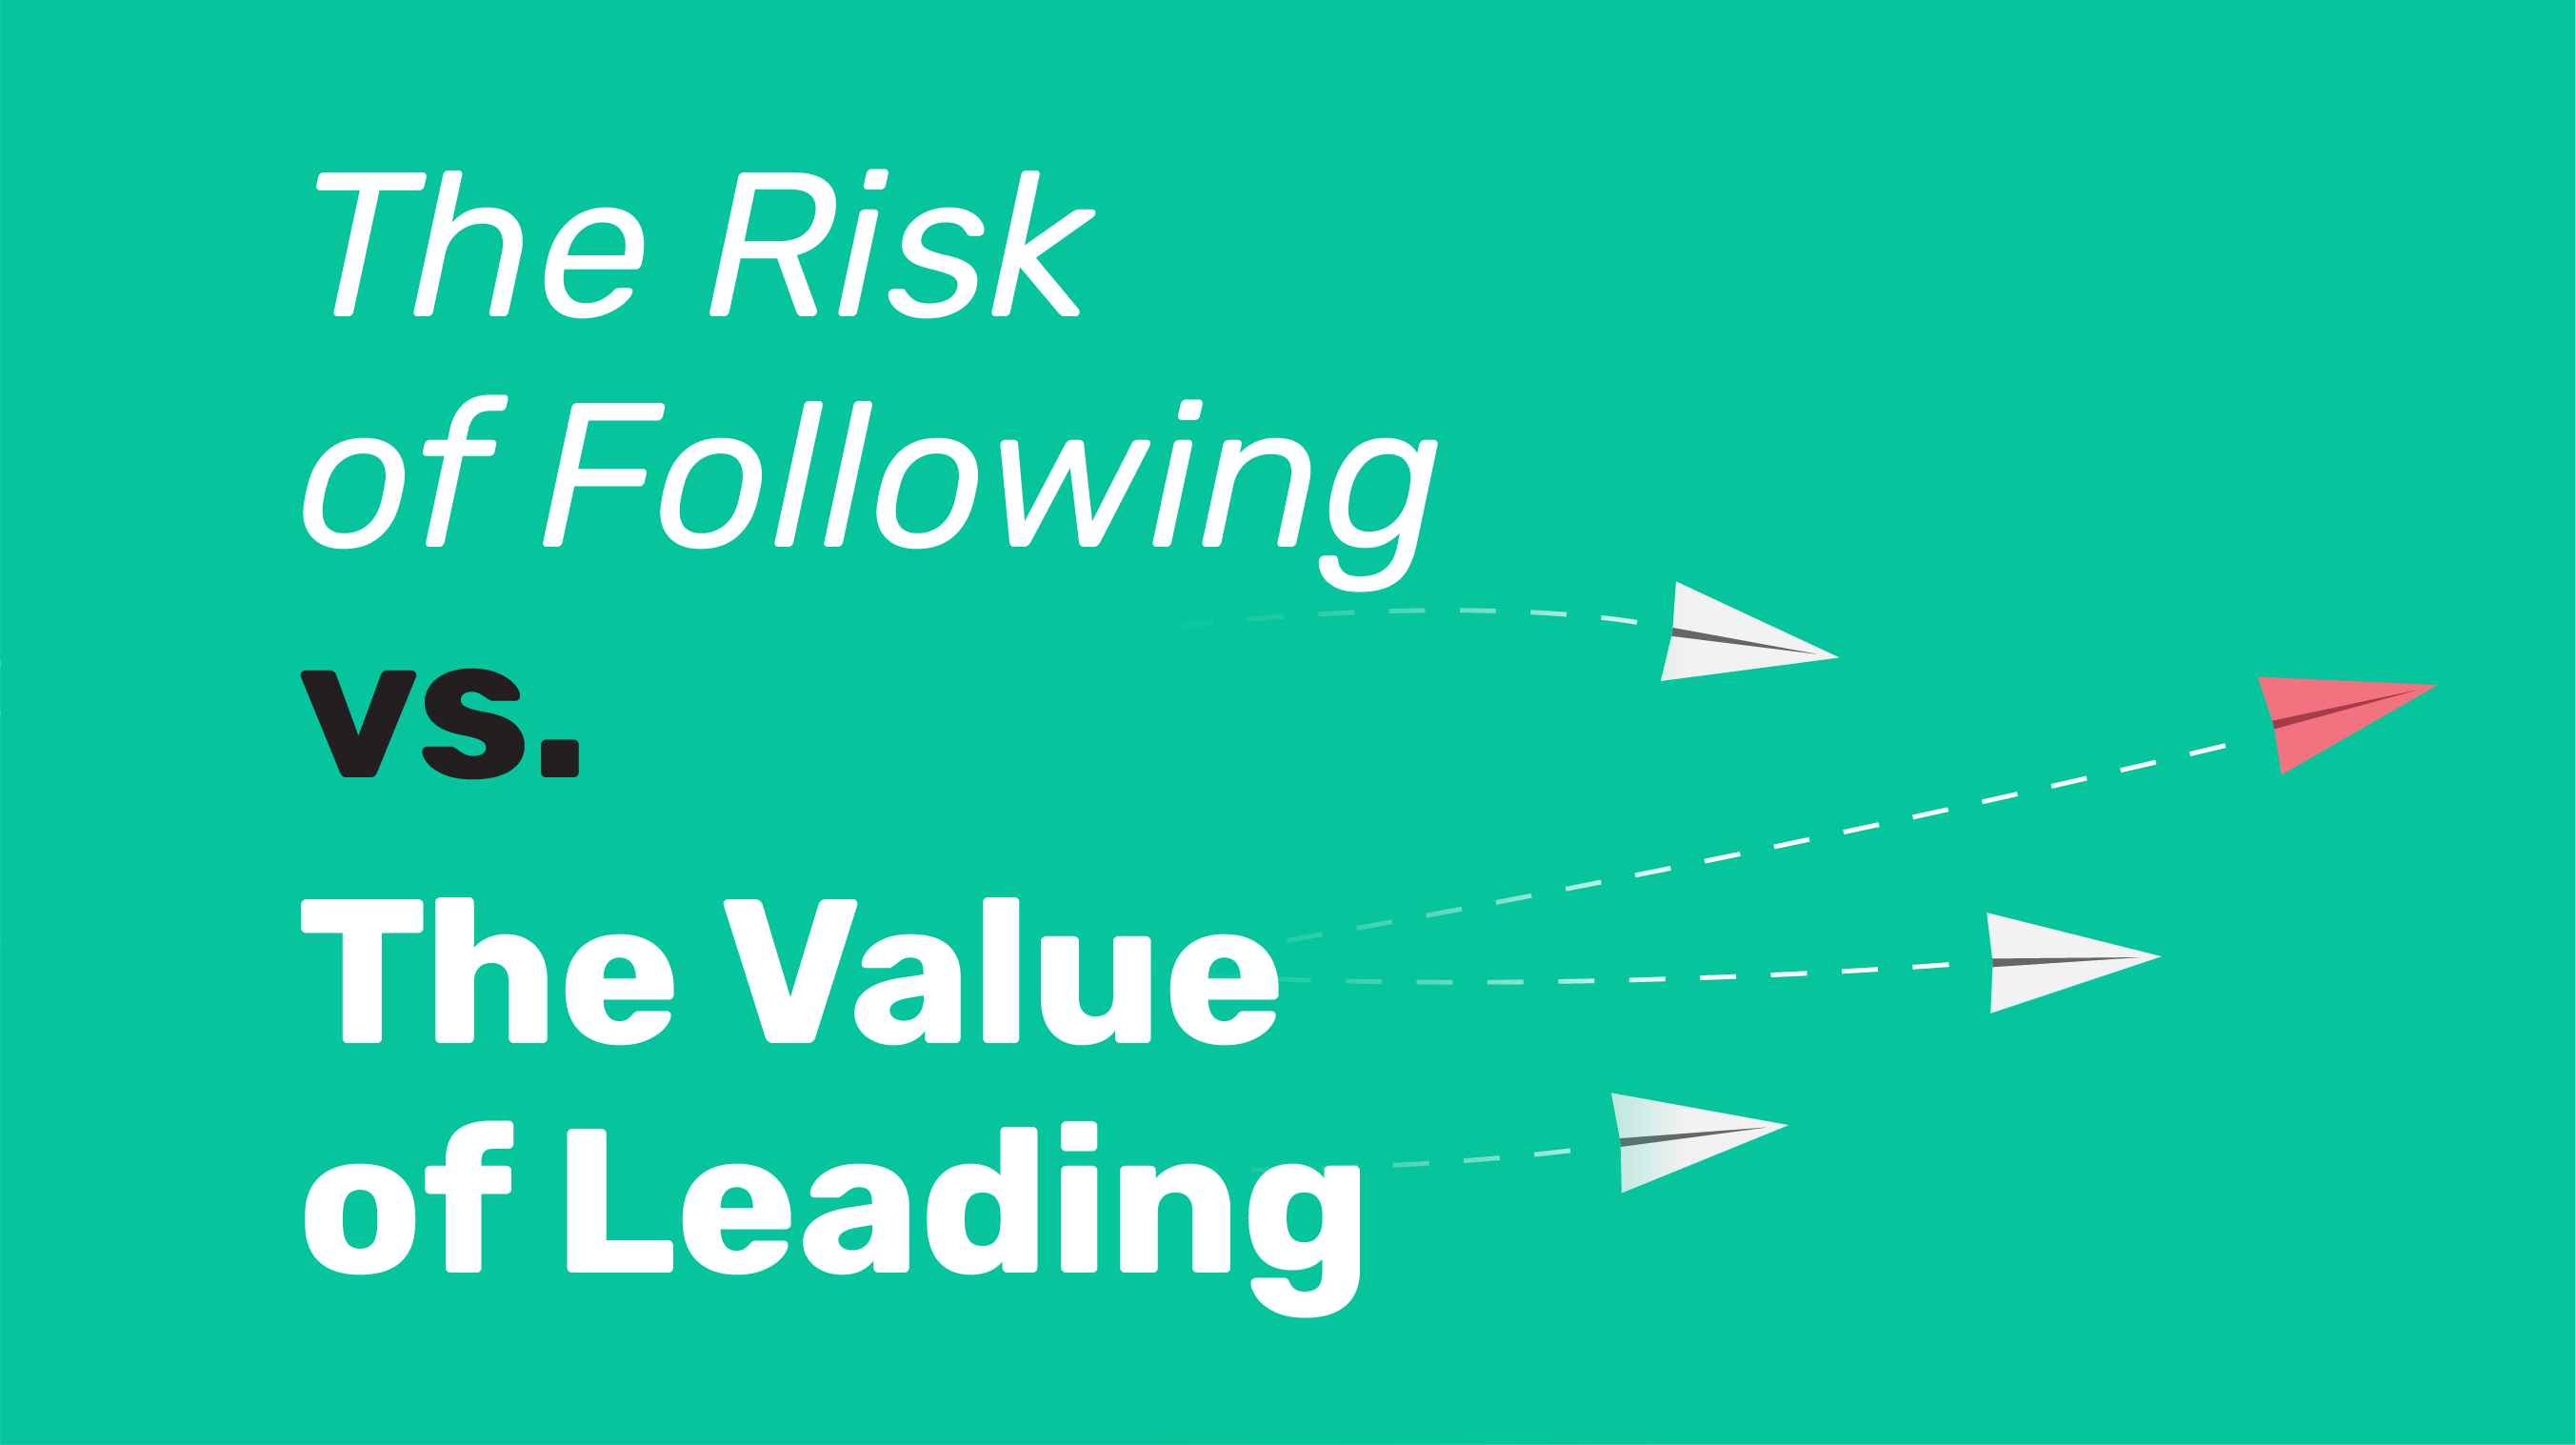 The Risk of Following vs. The Value of Leading